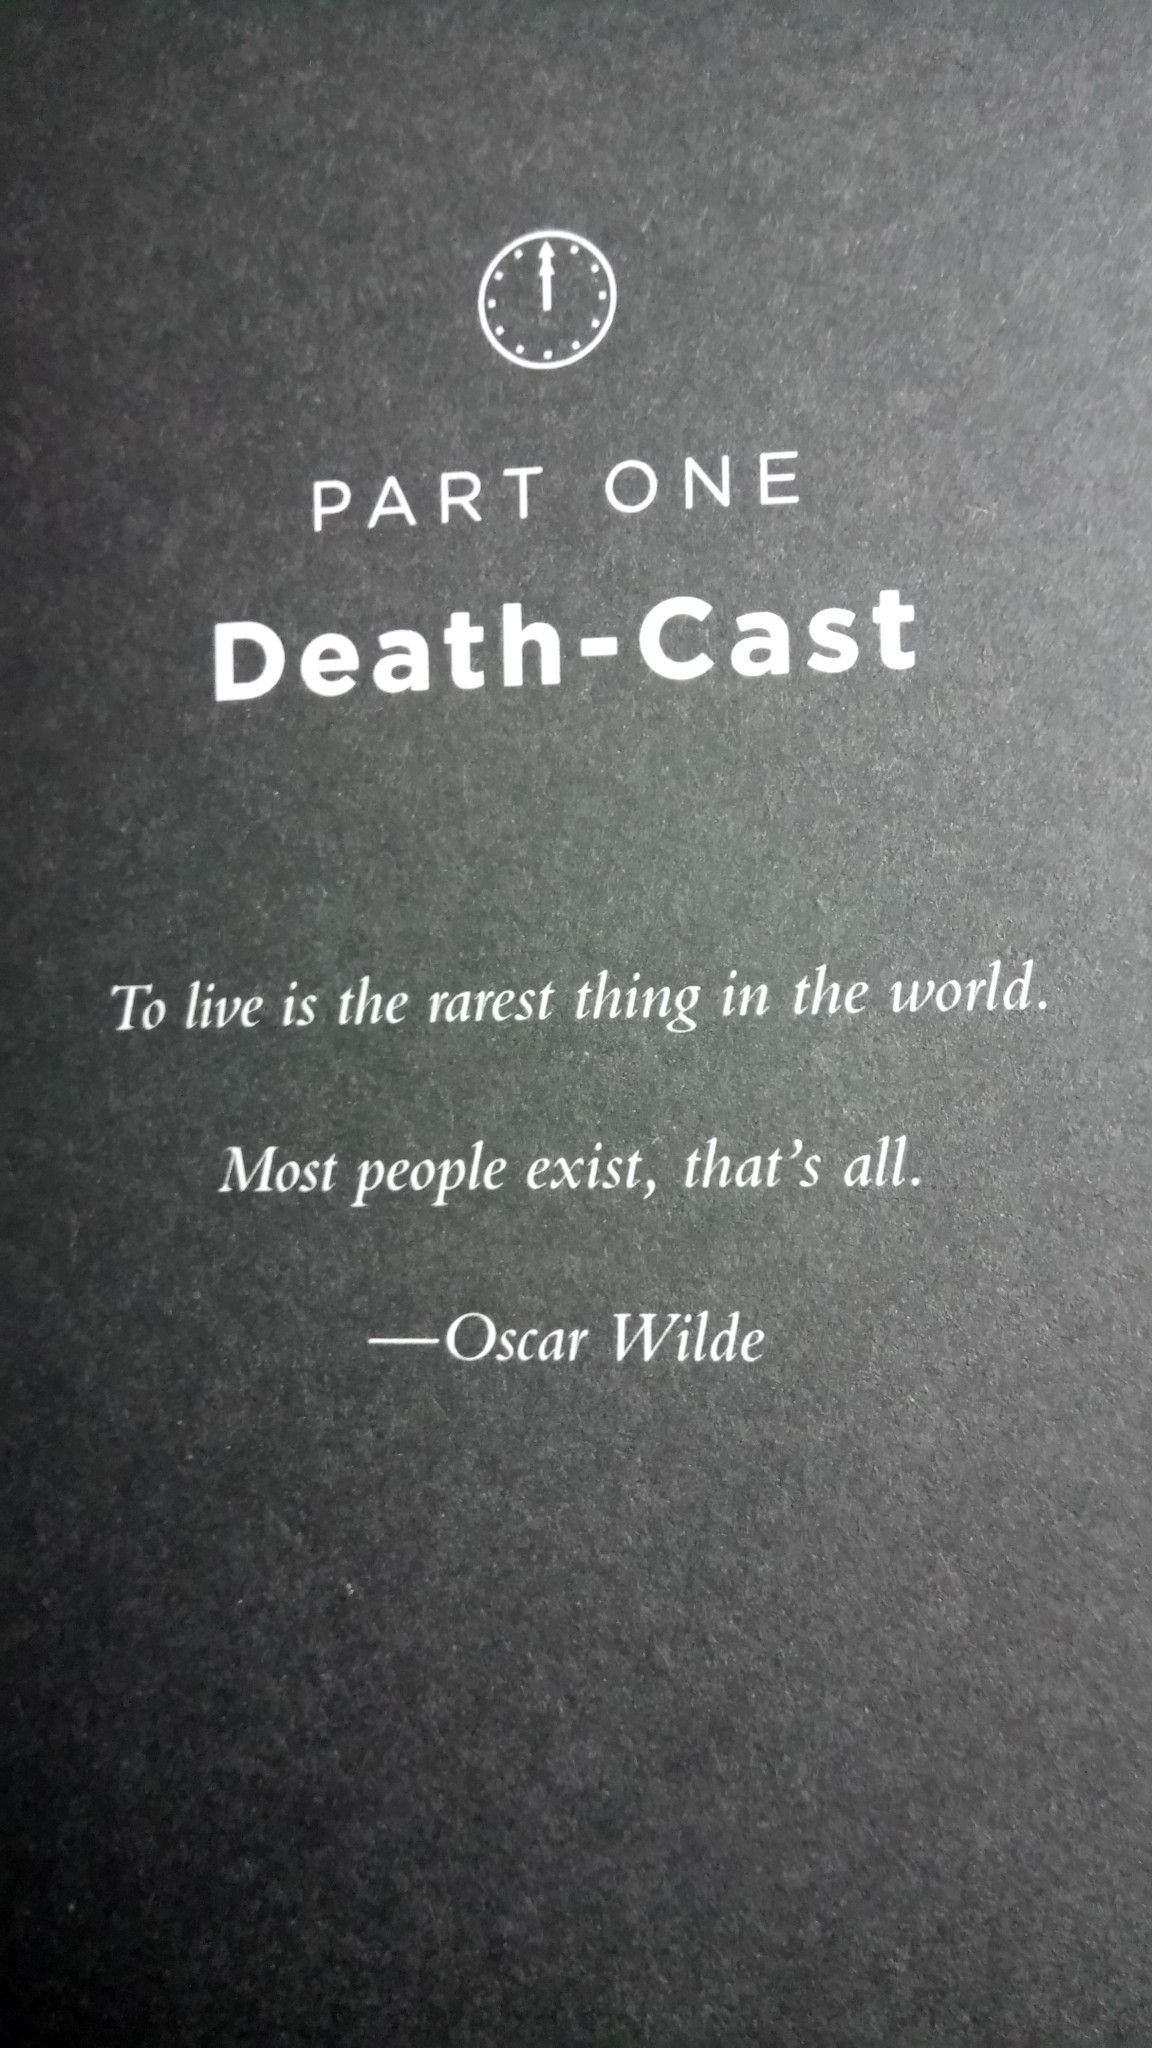 Quote Used In The Book They Both Die At The End Books In 2019